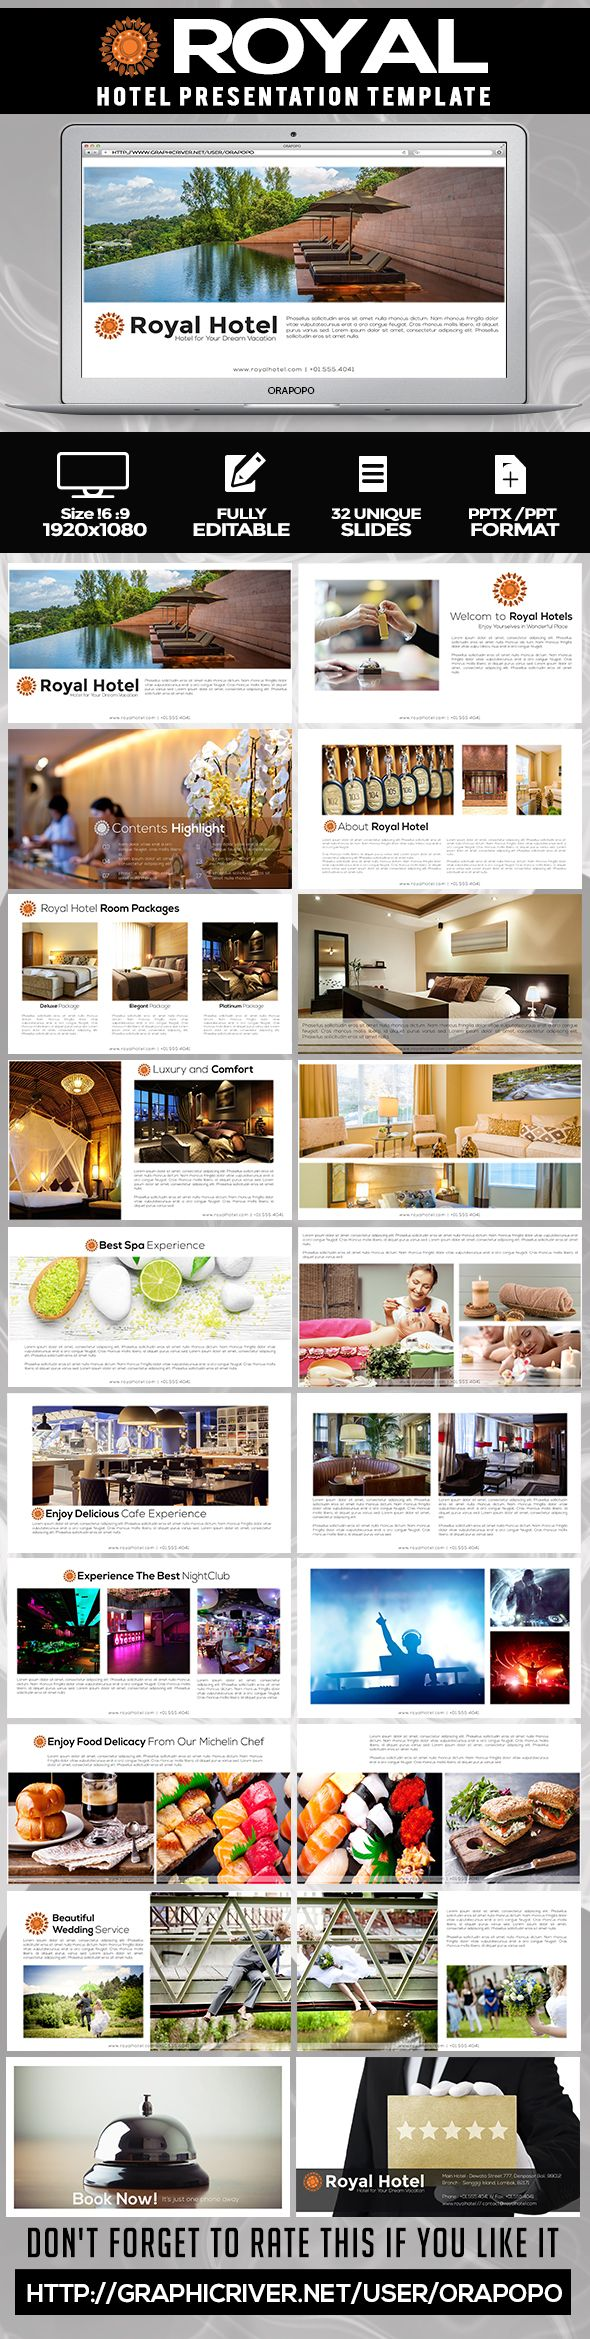 Royal hotel presentation template presentation templates royal hotel powerpoint presentation template download here http graphicriver toneelgroepblik Image collections